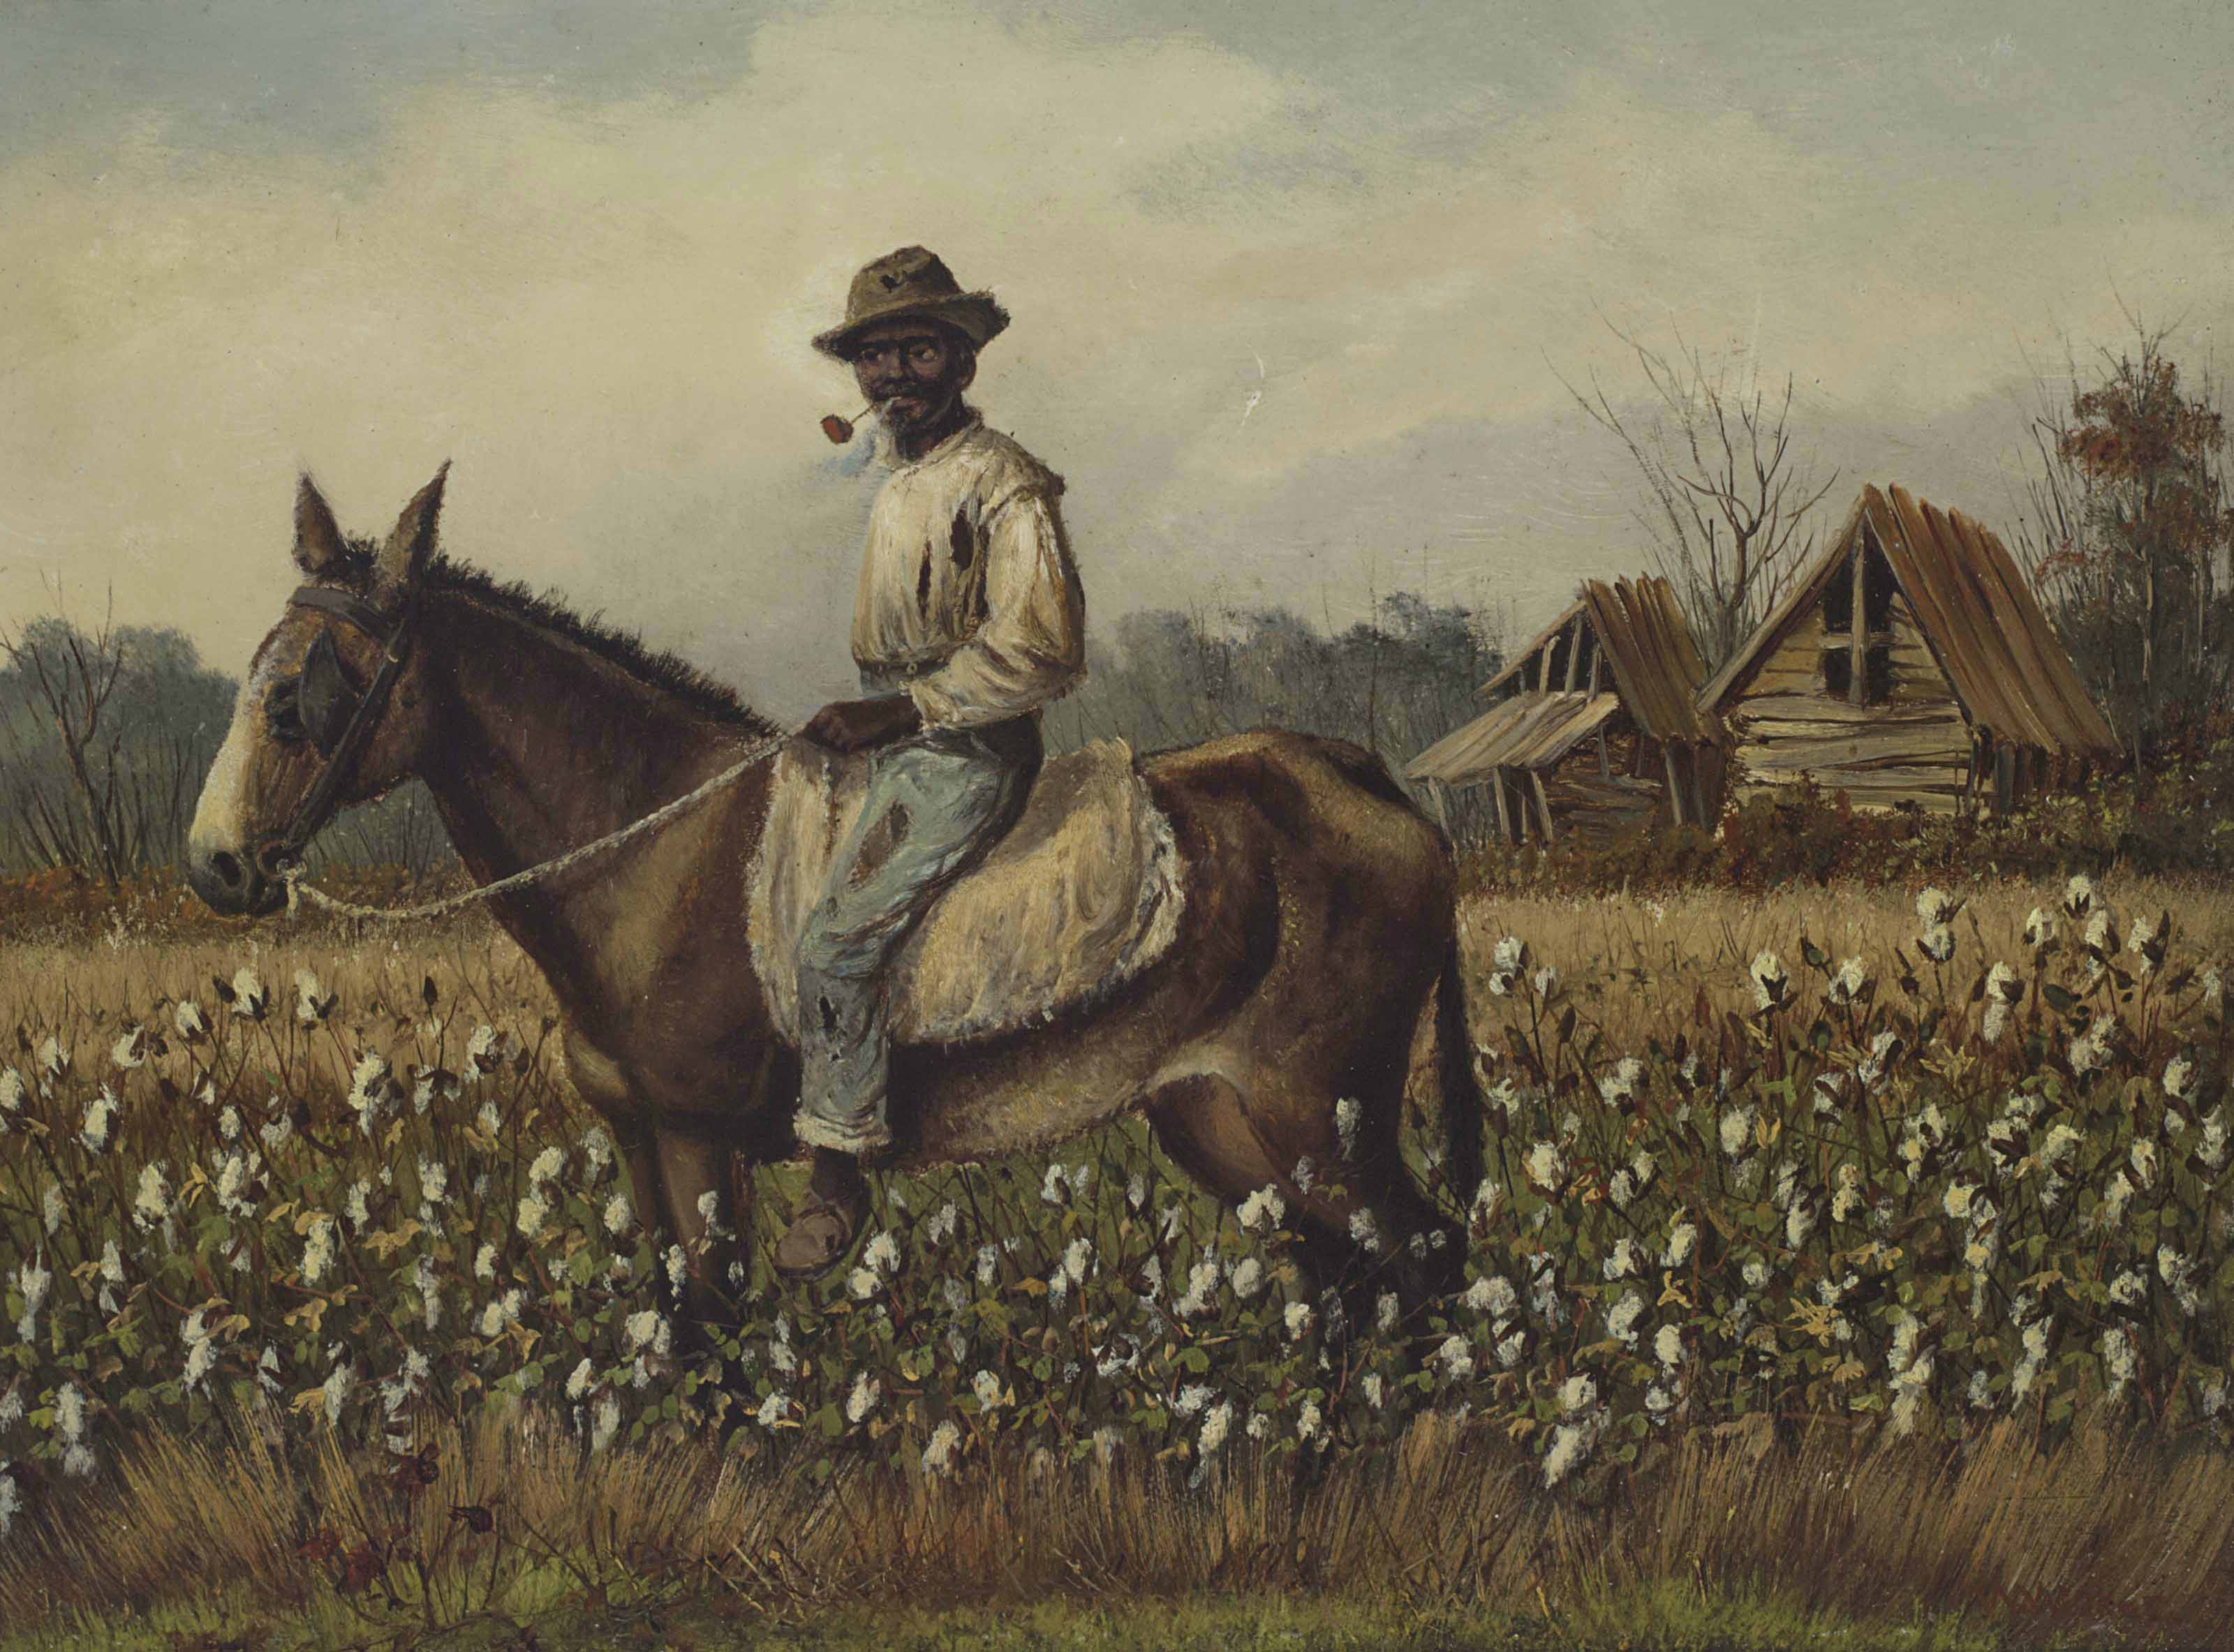 Man with Pipe on a Horse